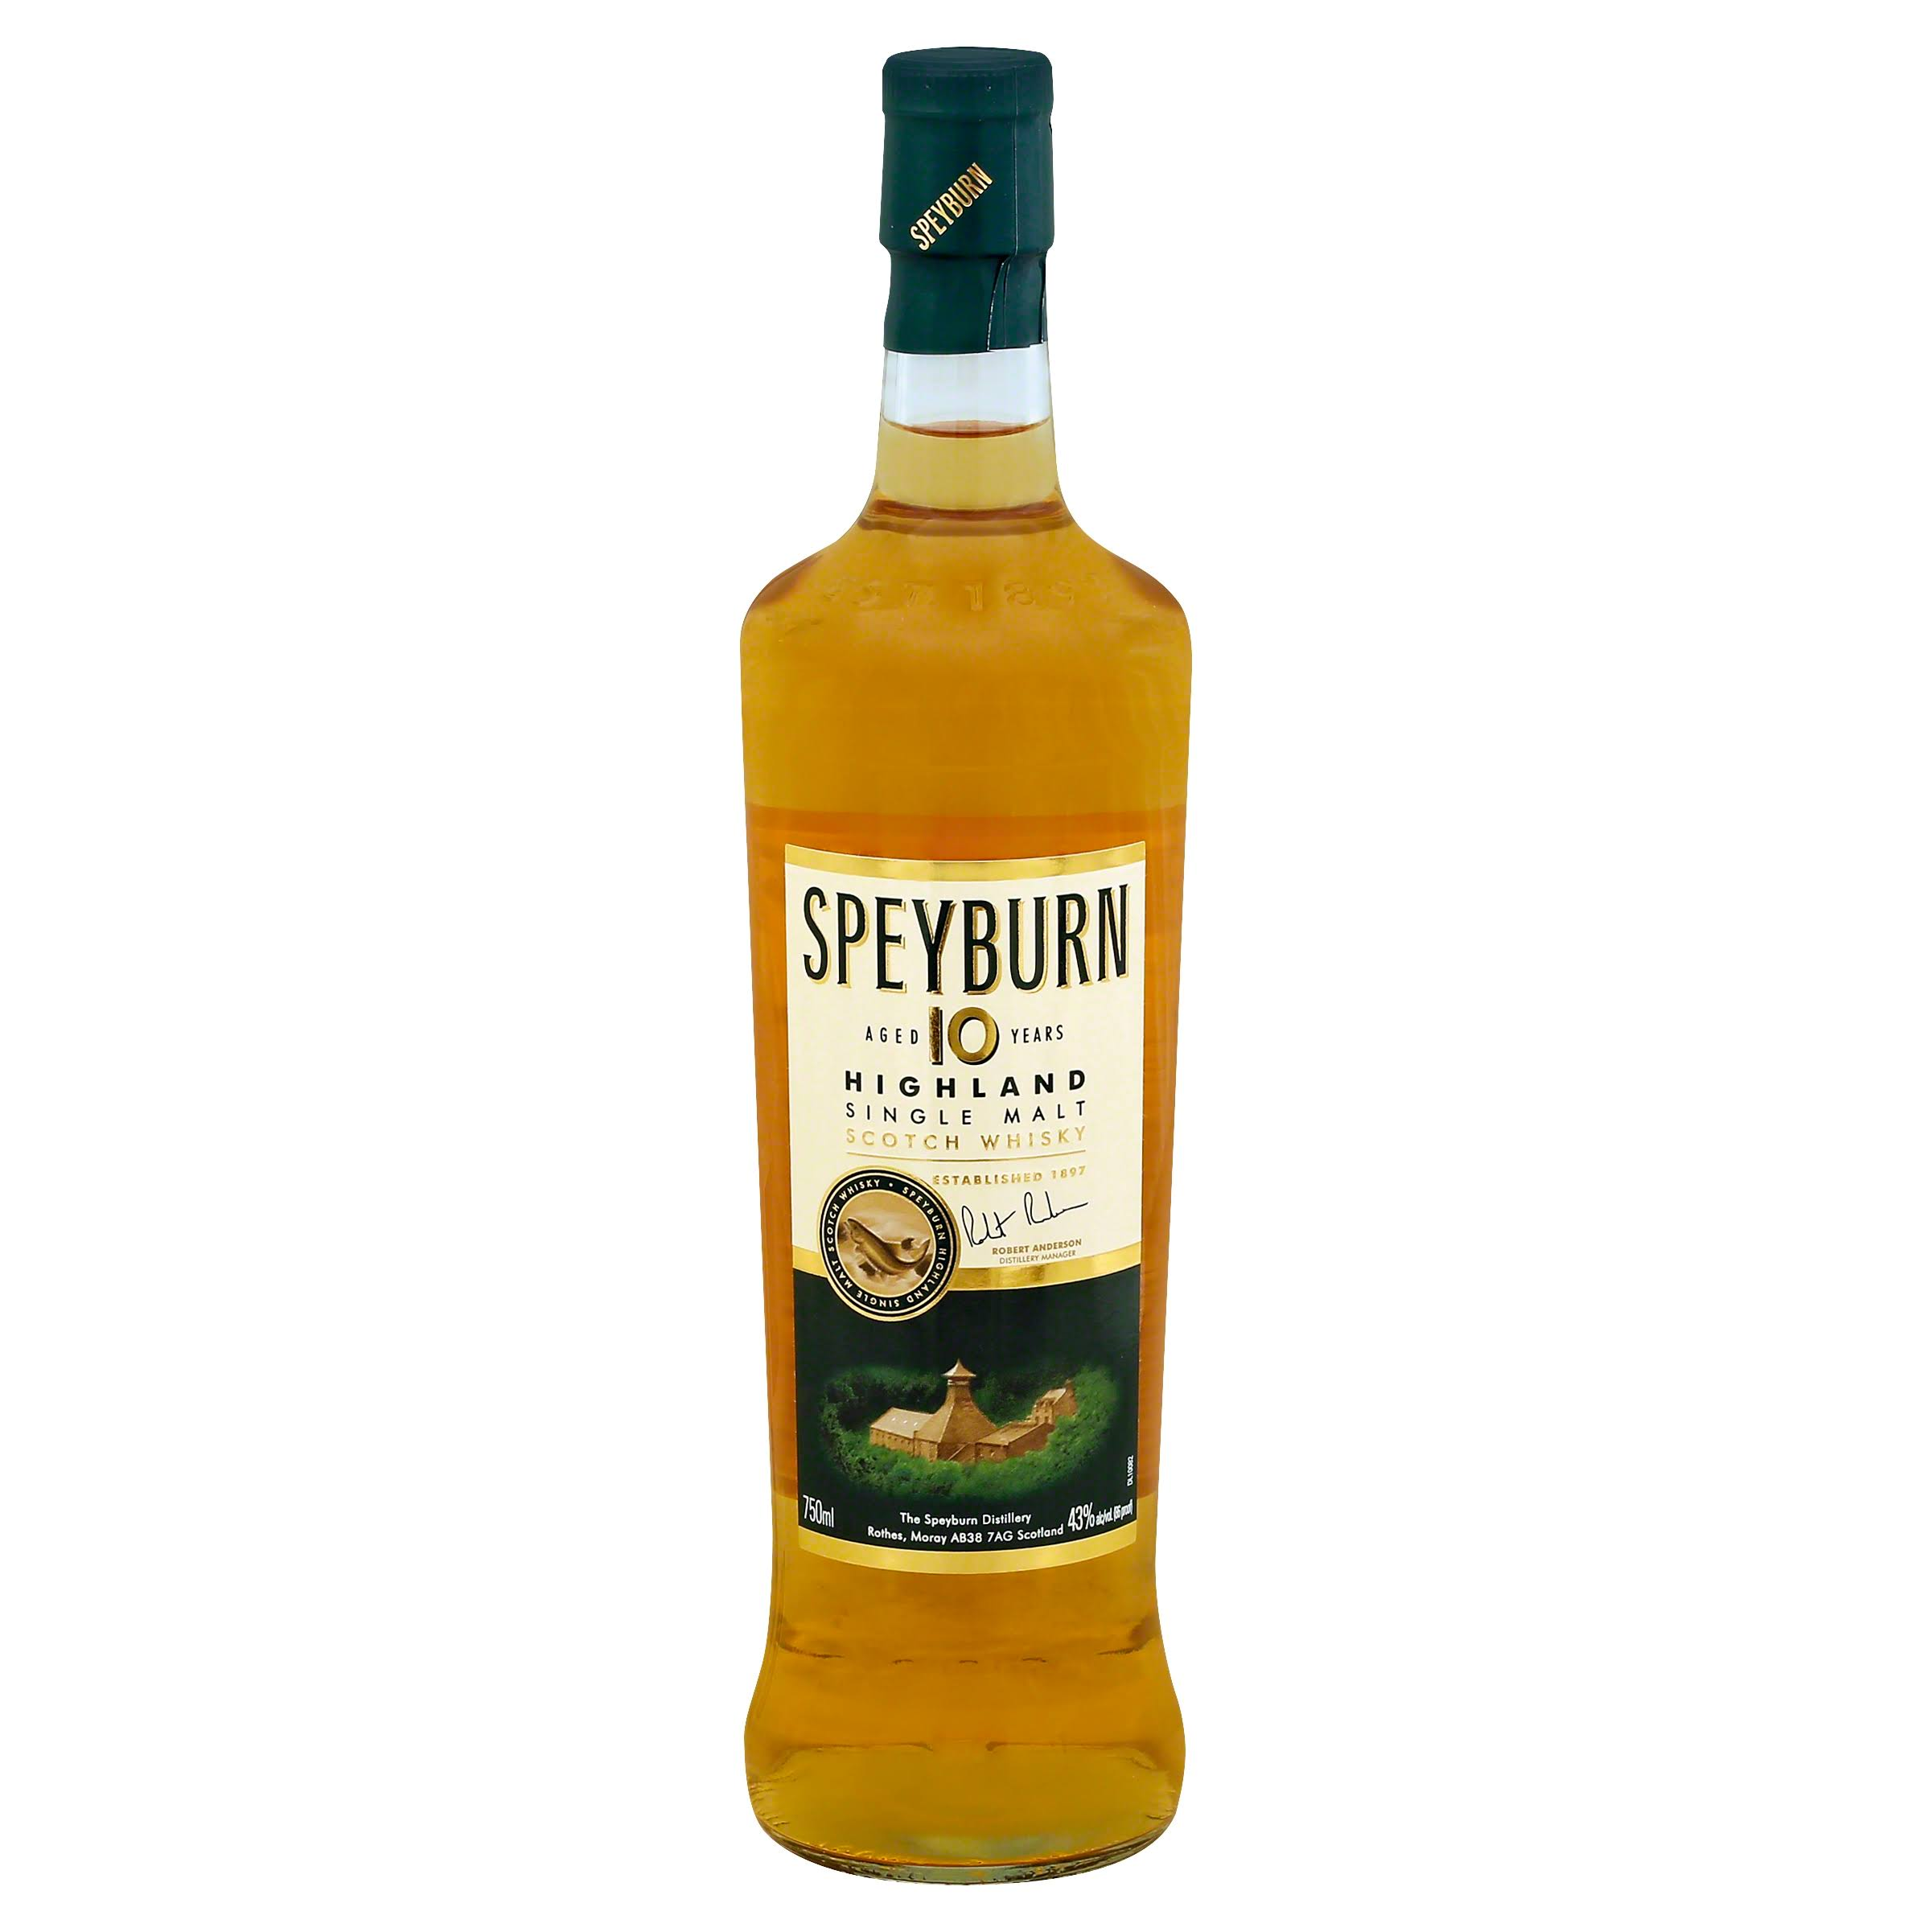 Speyburn Whisky, Highland Single Malt Scotch - 750 ml